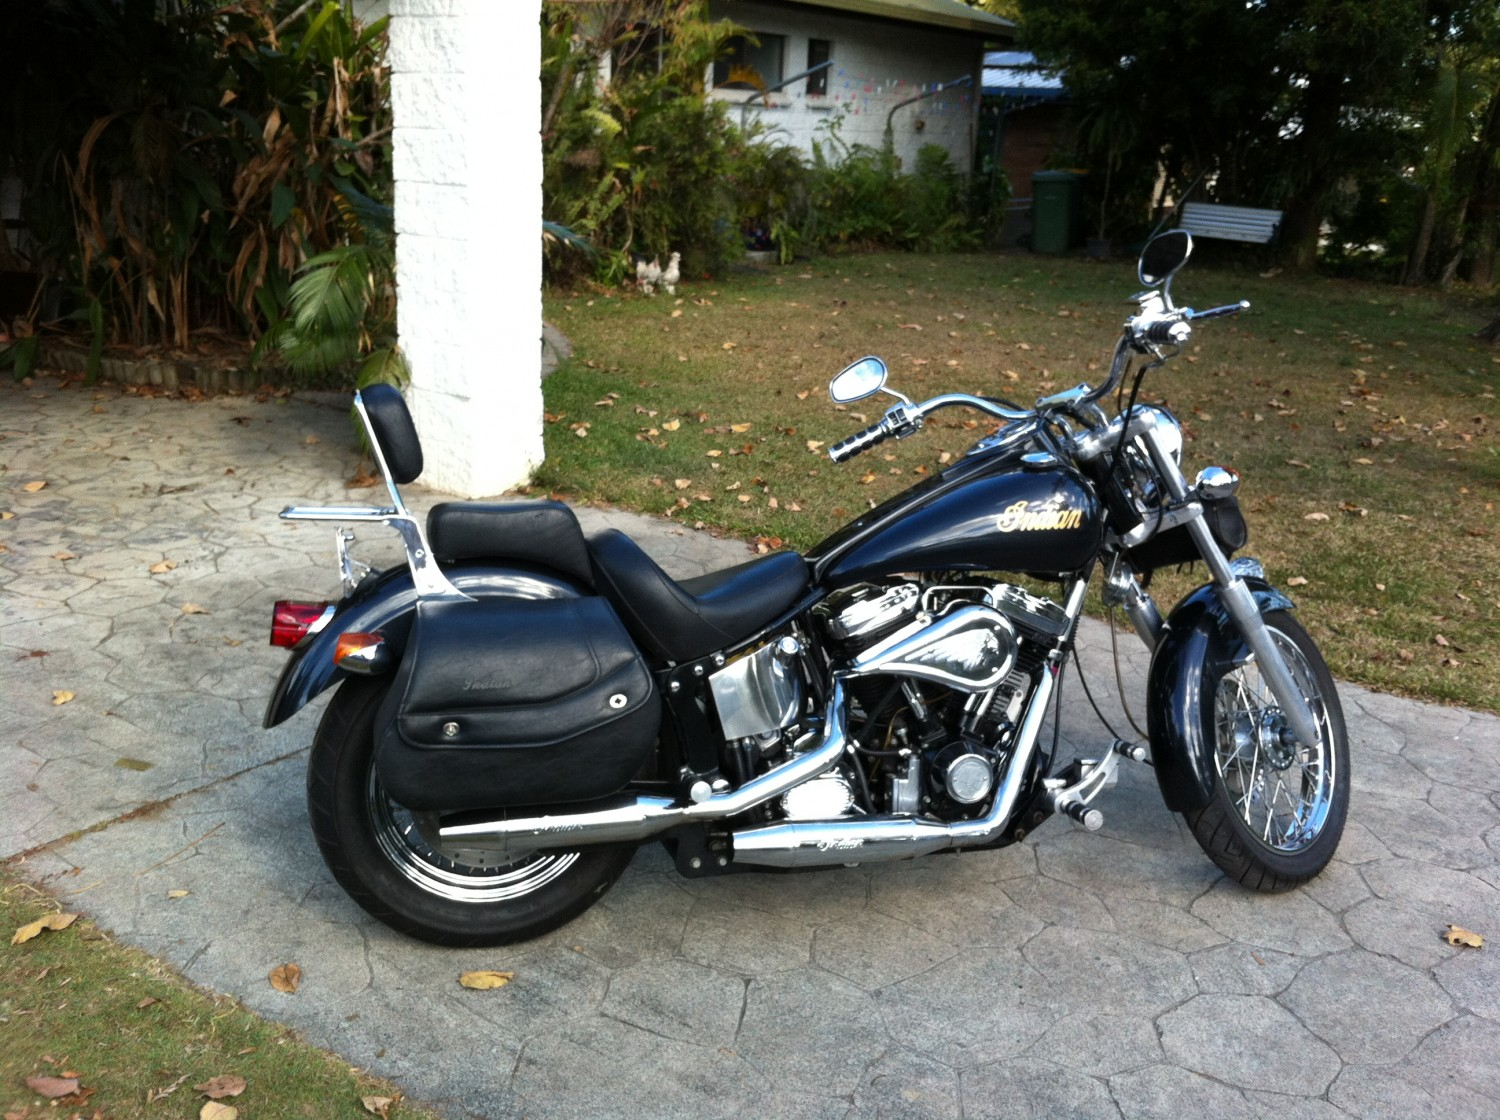 2001 Indian Scout - Scout2001 - Shannons Club-9931